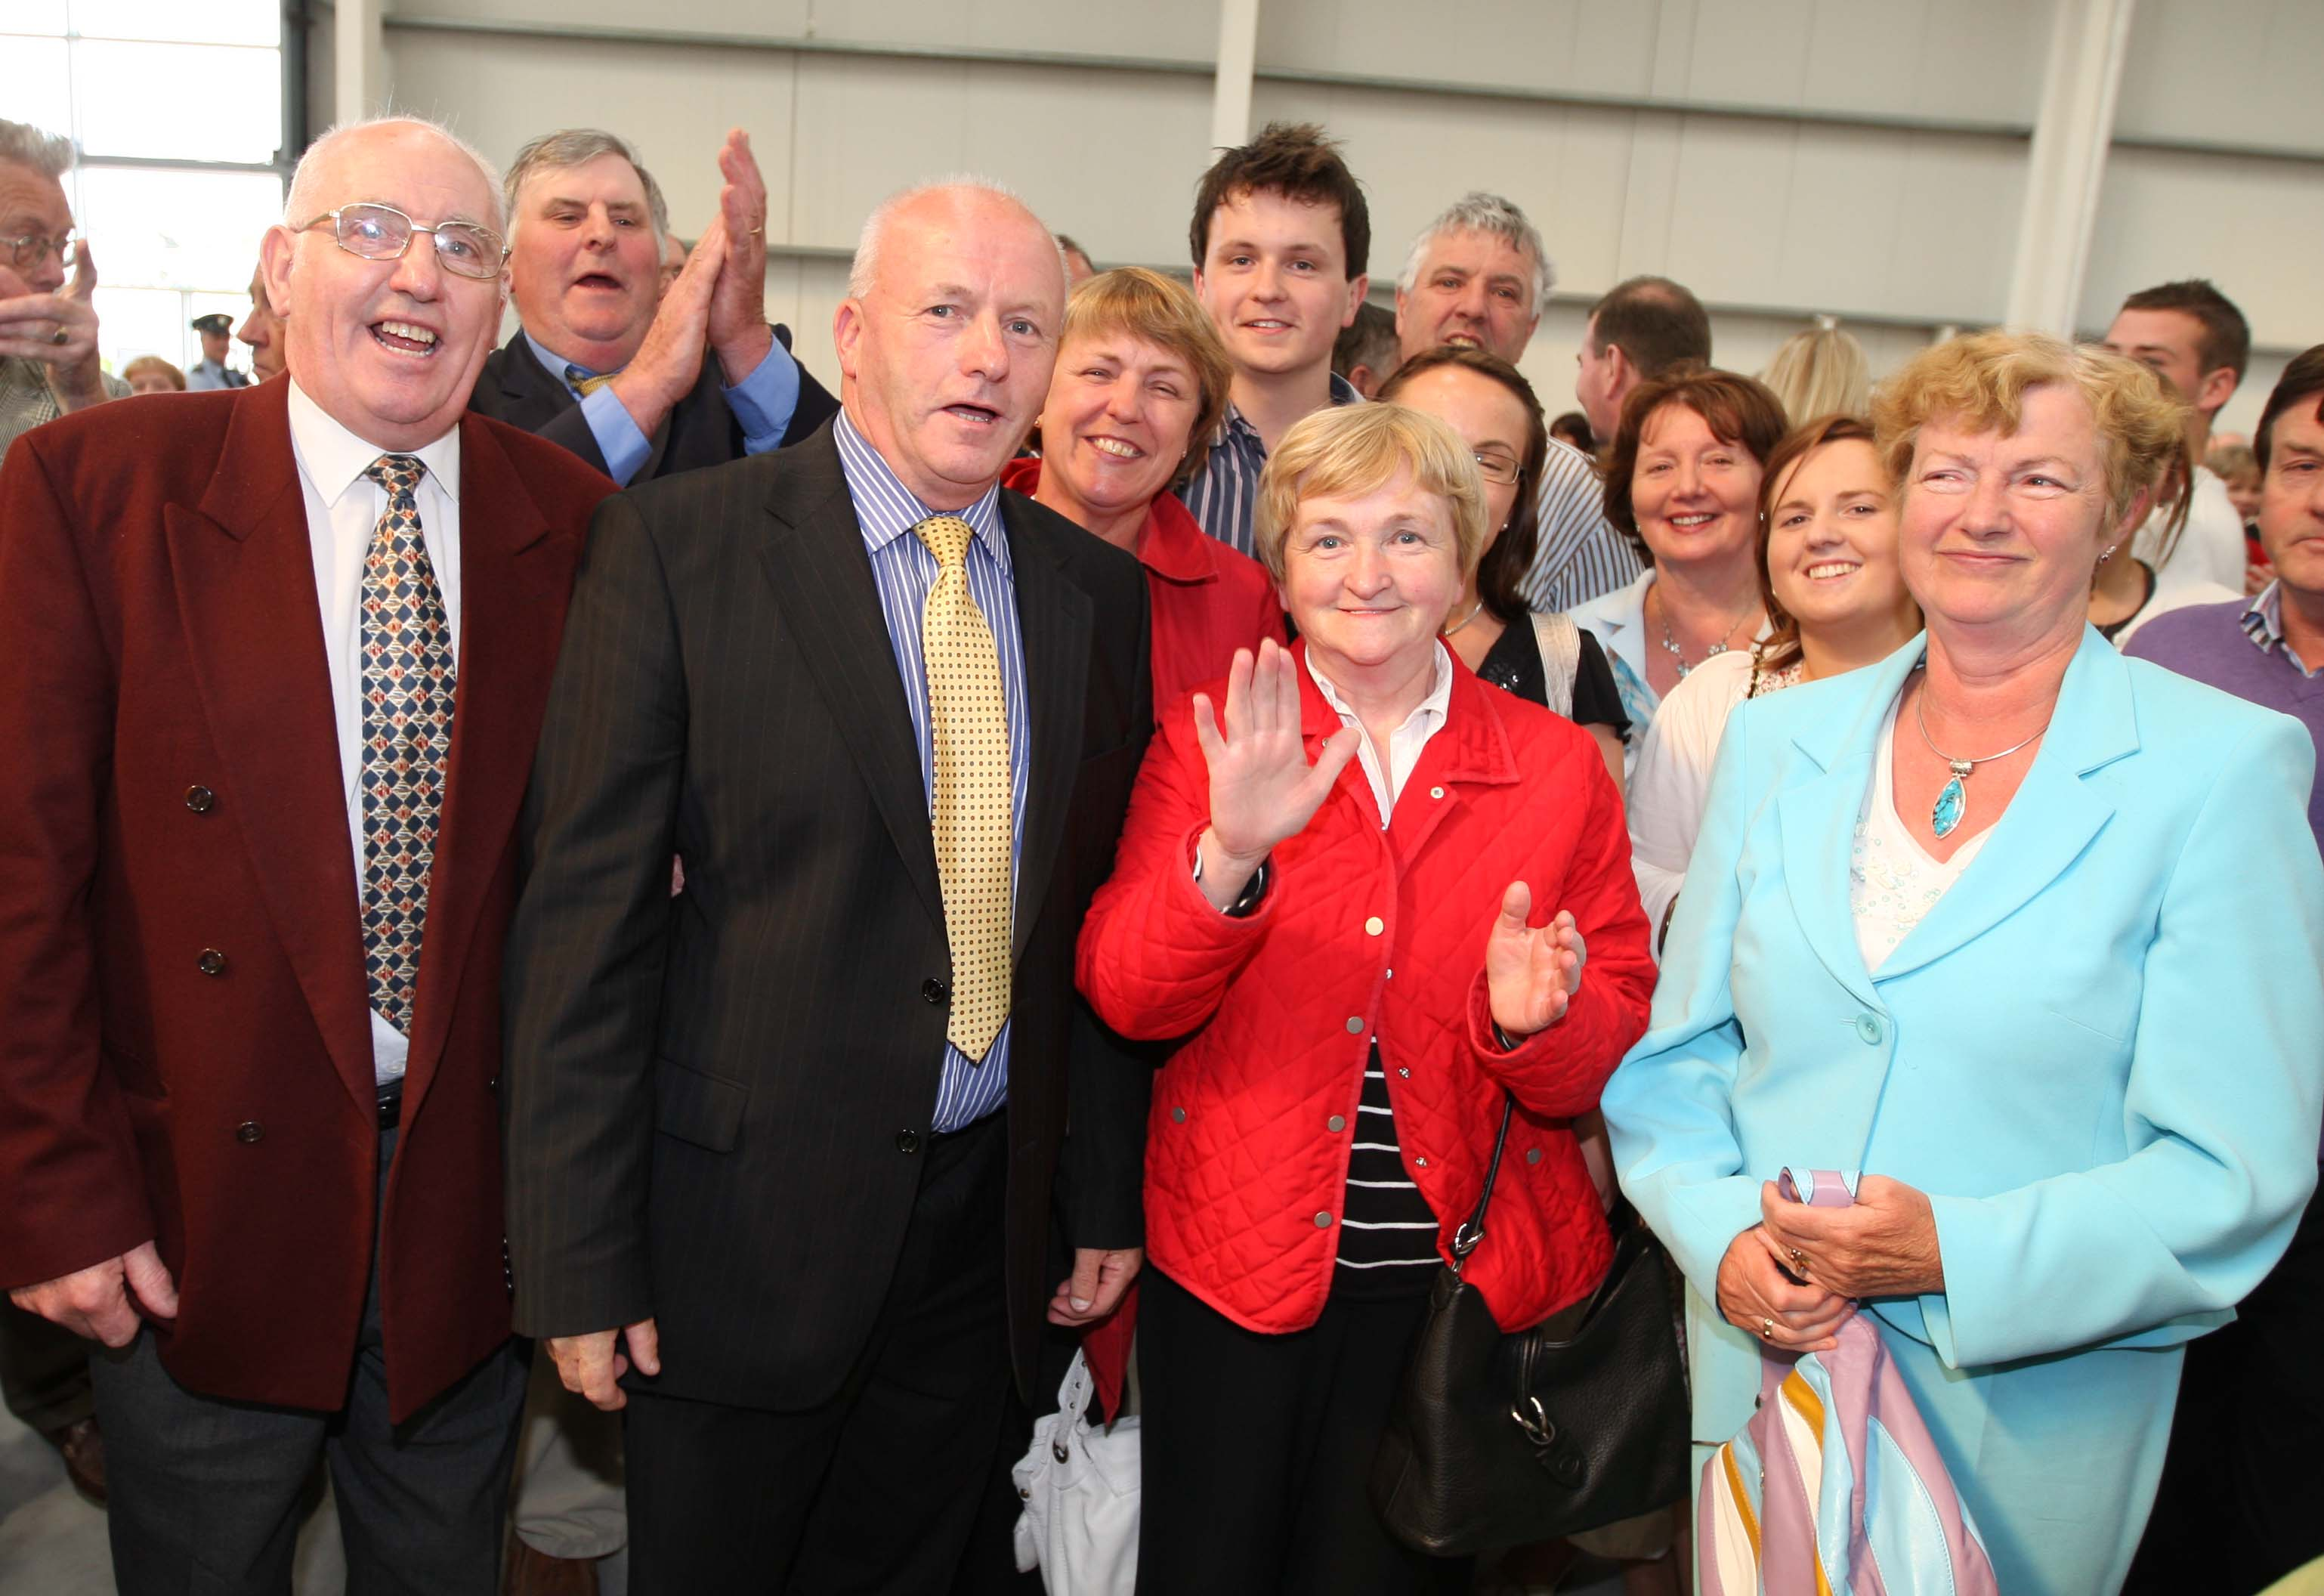 Tom Mulhall with friends and family at the 2009 Local Election count